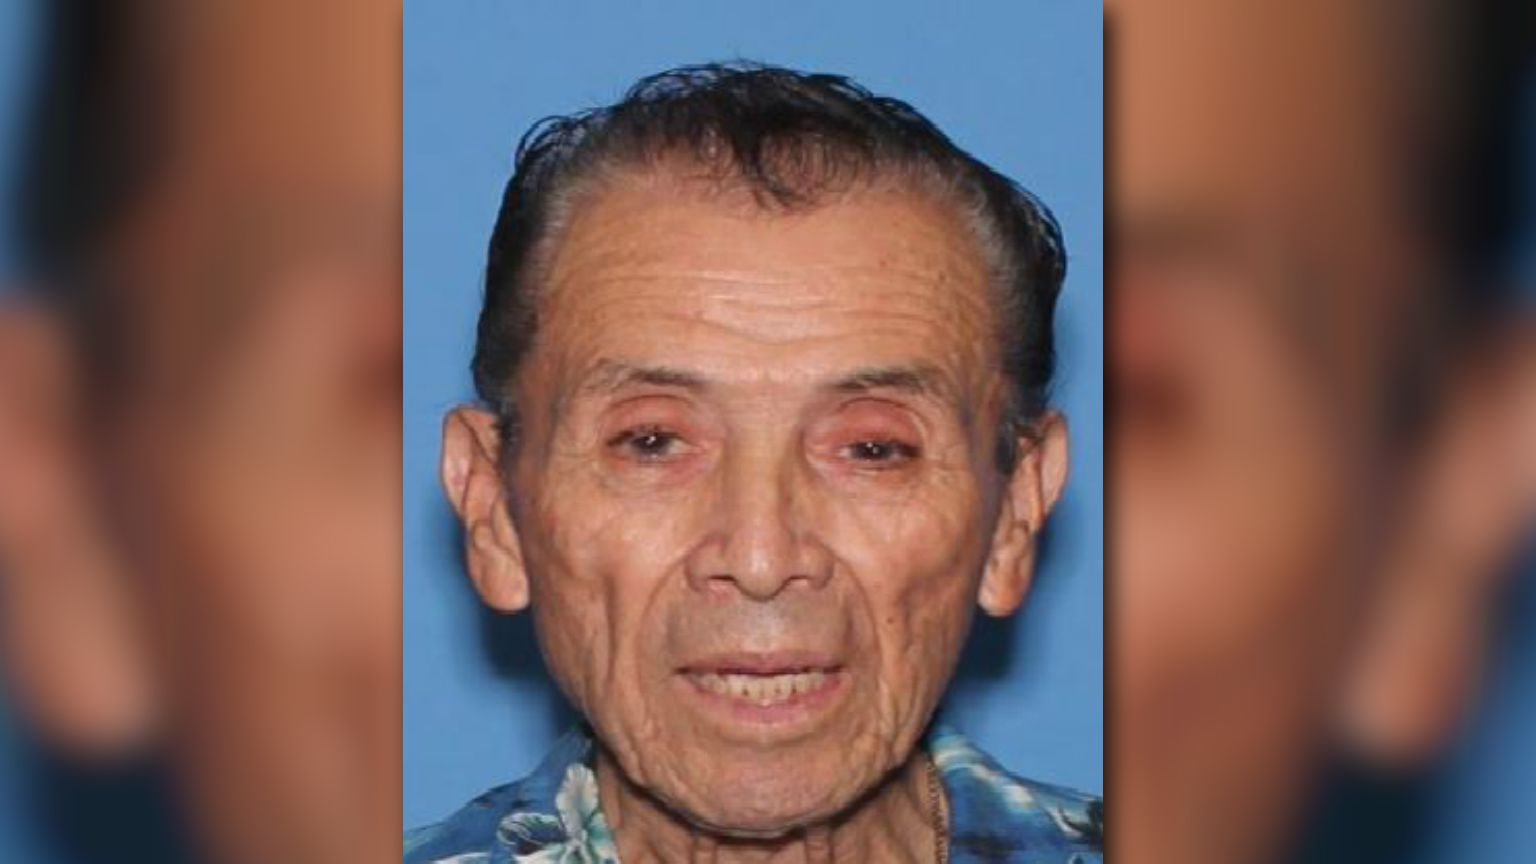 SILVER ALERT: Tucson man with dementia missing since April 18